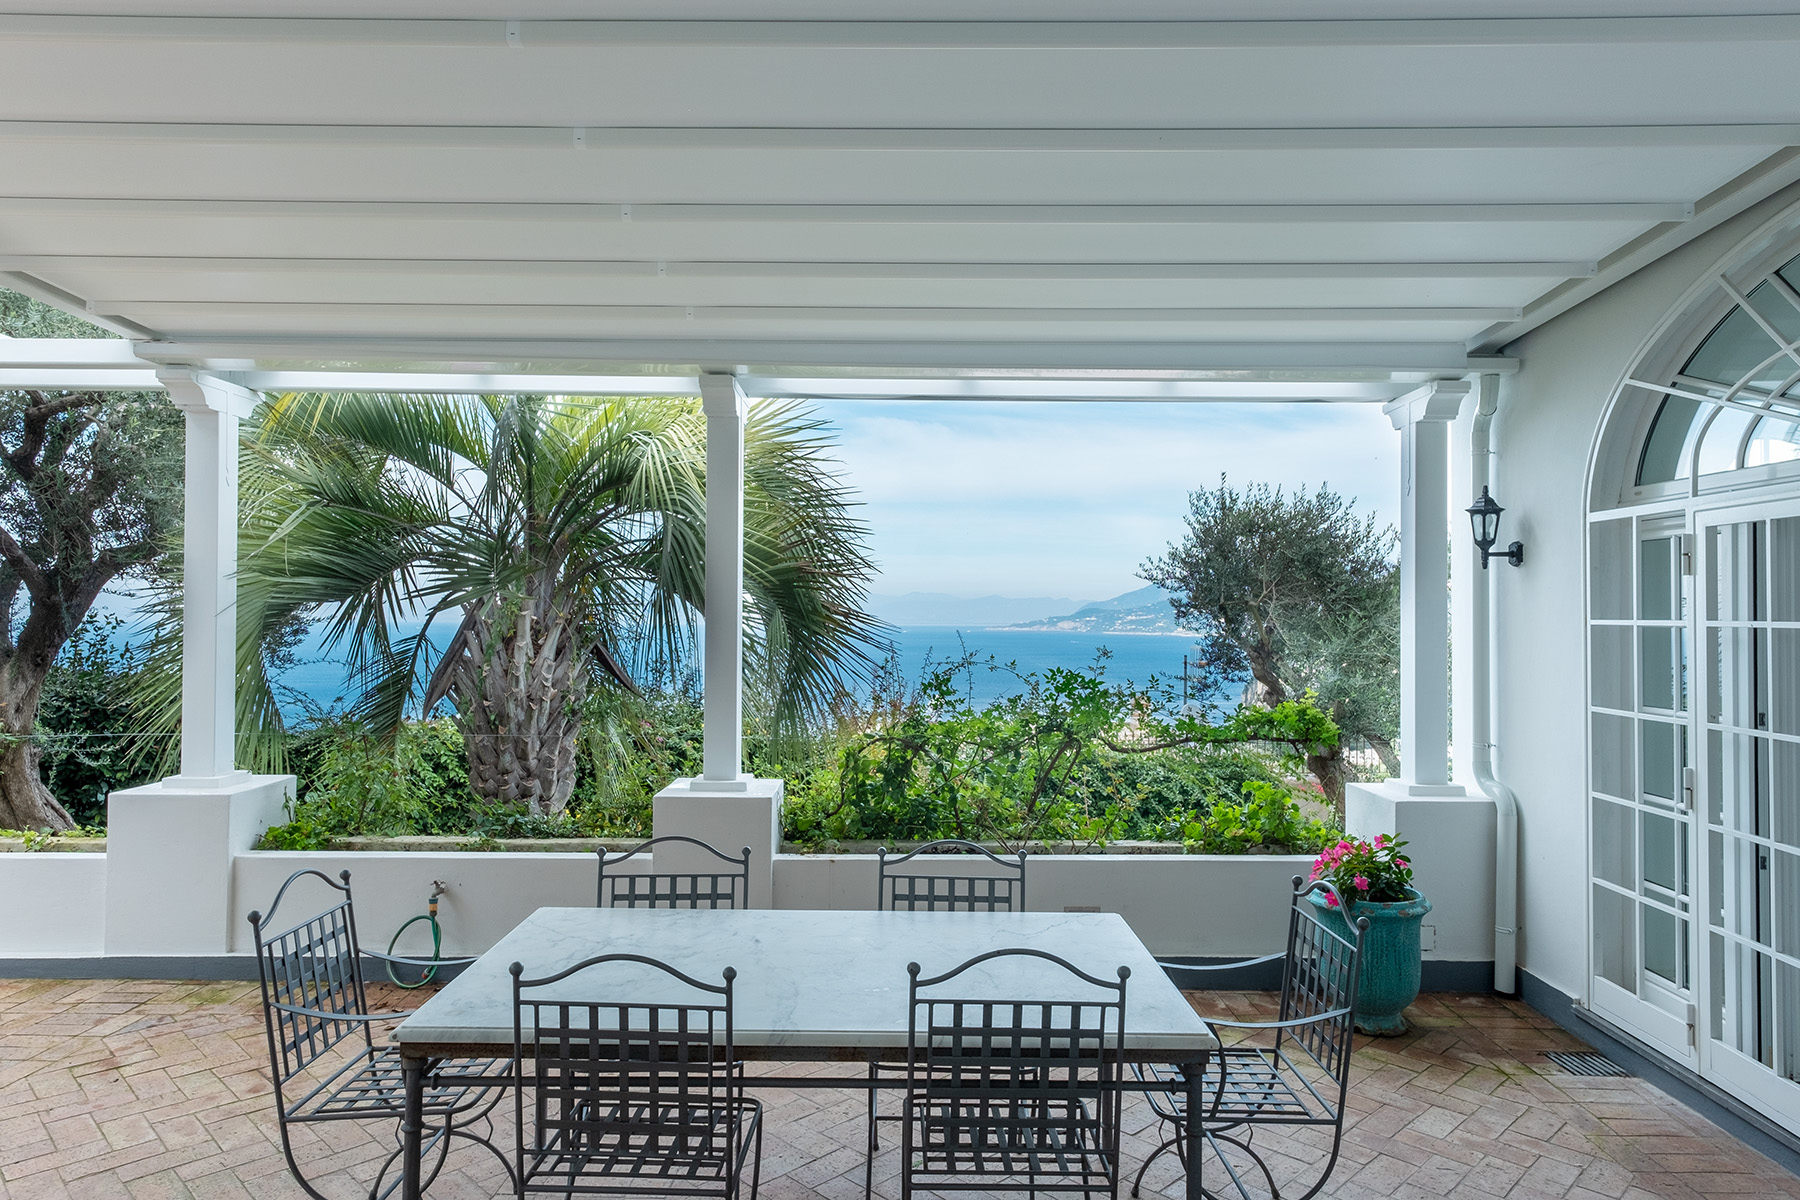 Property のために 売買 アット Amazing villa overlooking the sea and the most beautiful garden in the island Capri, ナポリ イタリア